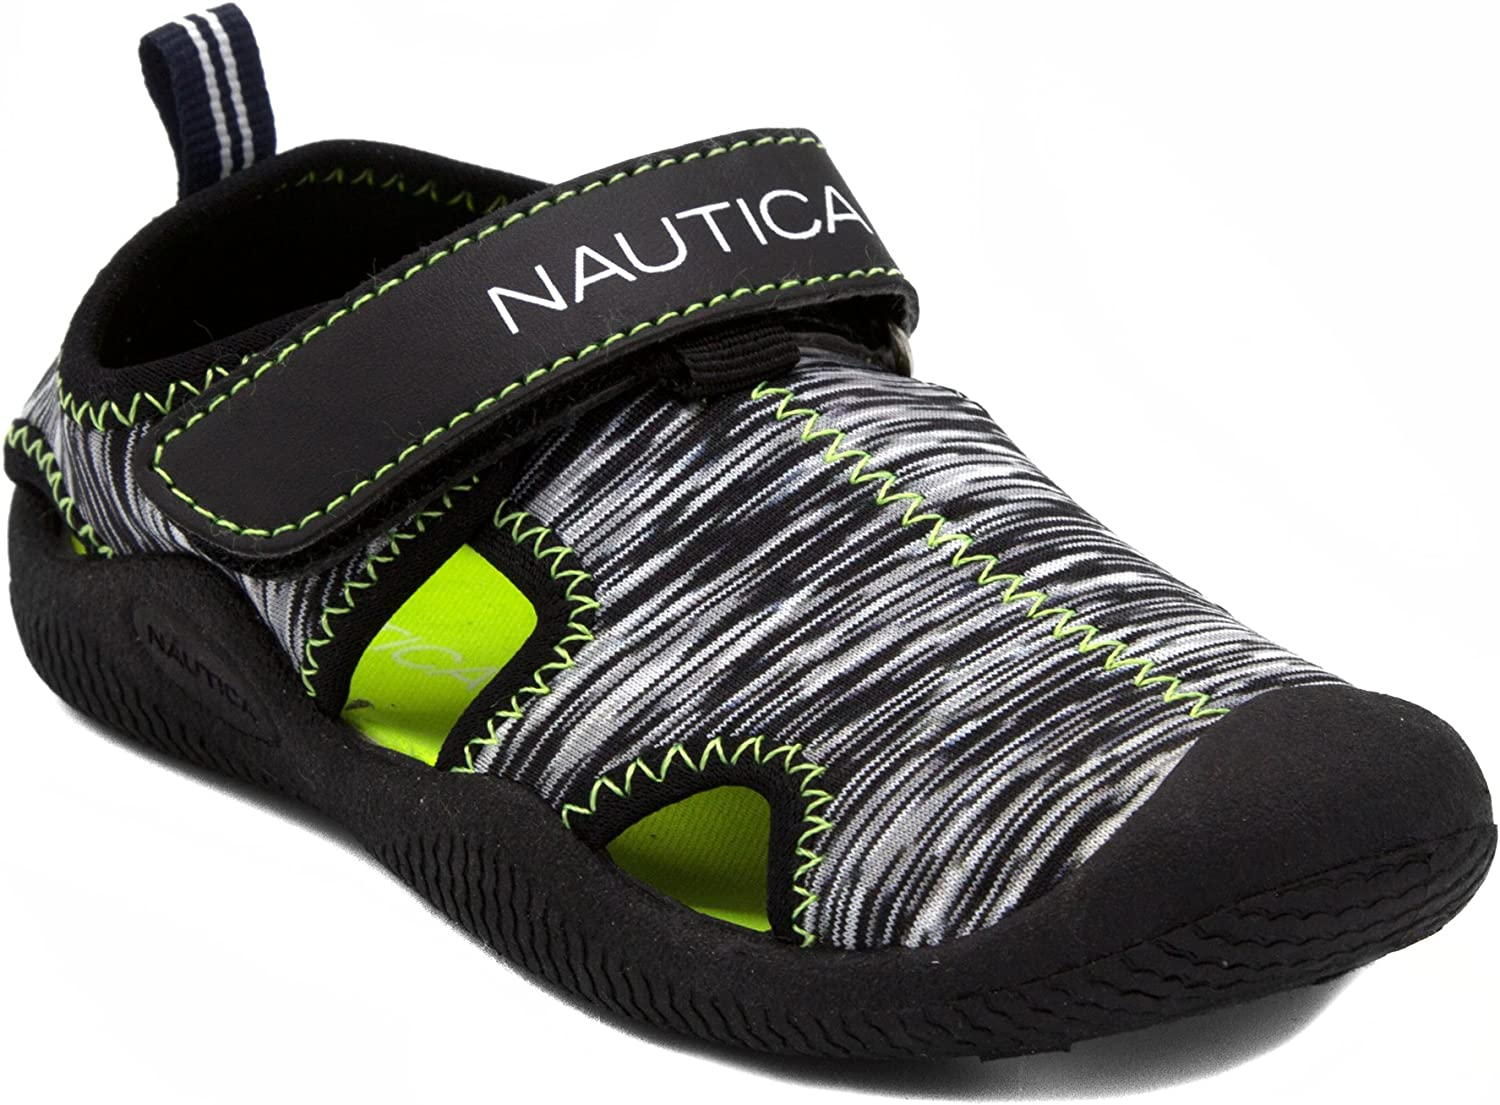 Nautica Kids Kettle Gulf Protective Water Shoe,Closed-Toe Sport Sandal |Boy - Girl (Youth/Big Kid/Little Kid/Toddler/Infant)